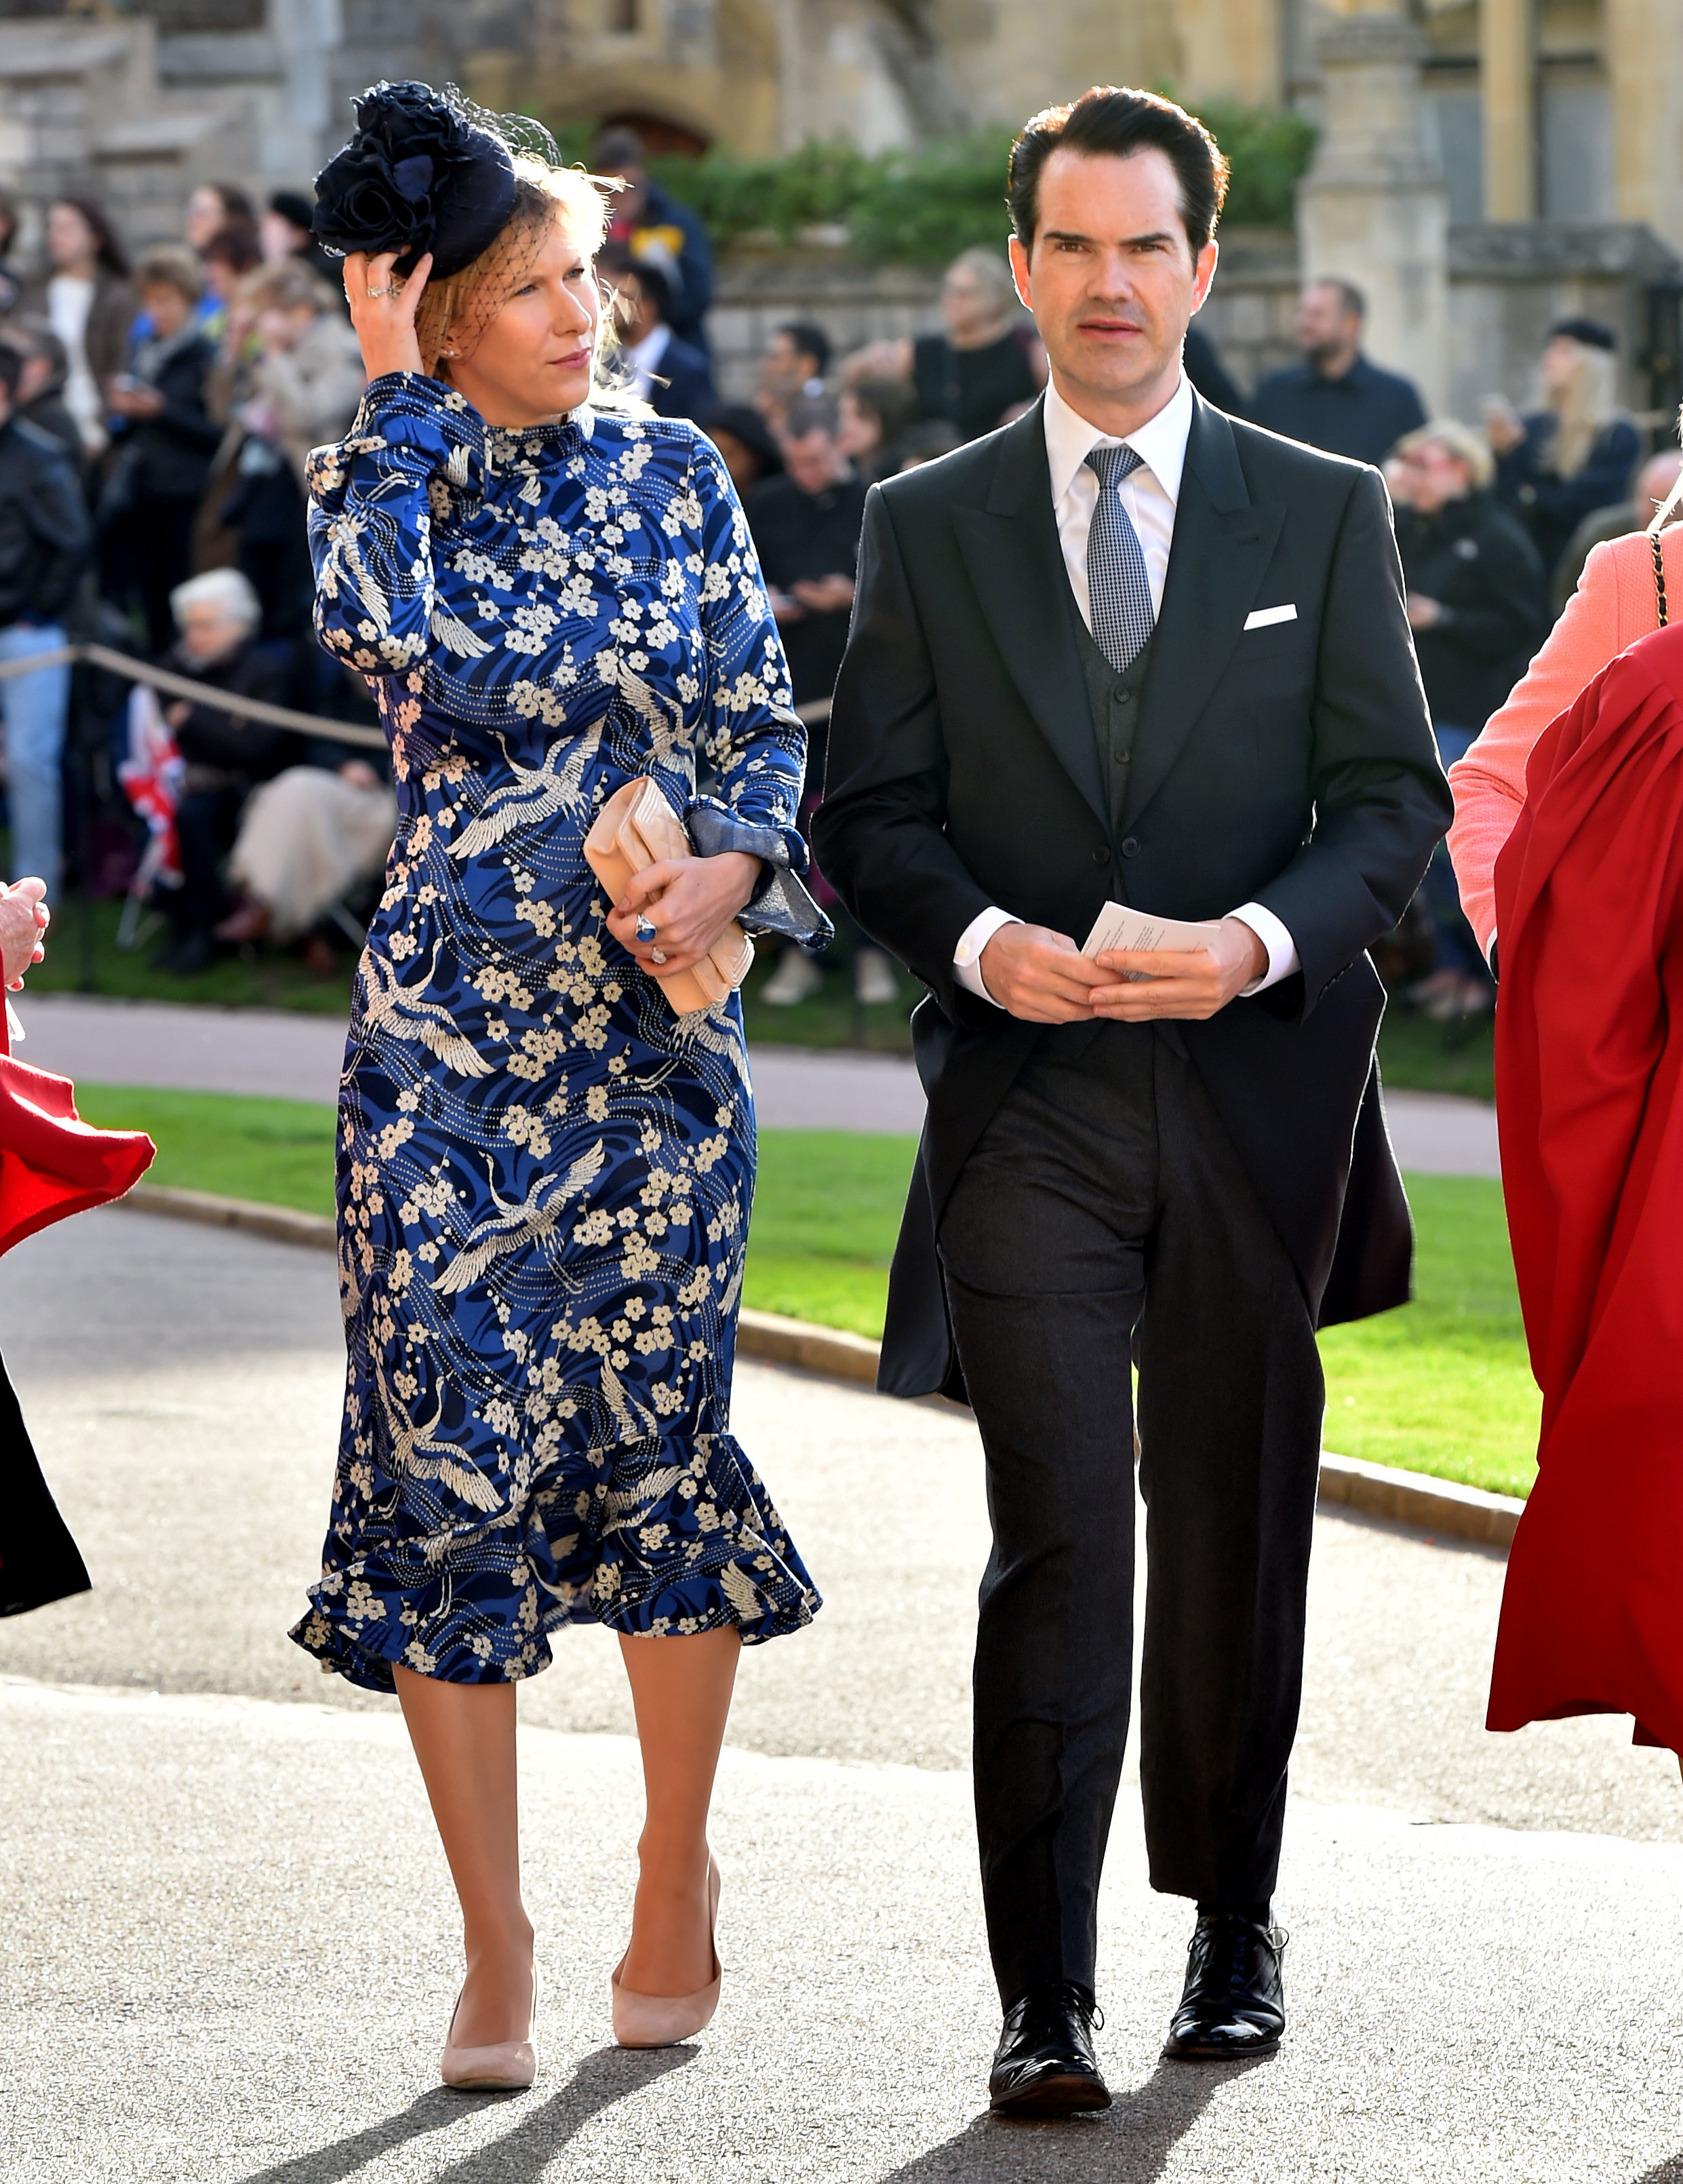 Karoline Copping and Jimmy Carr arrive ahead of the wedding of Princess Eugenie of York to Jack Brooksbank at Windsor Castle on October 12, 2018, in Windsor, England. (Getty Images)